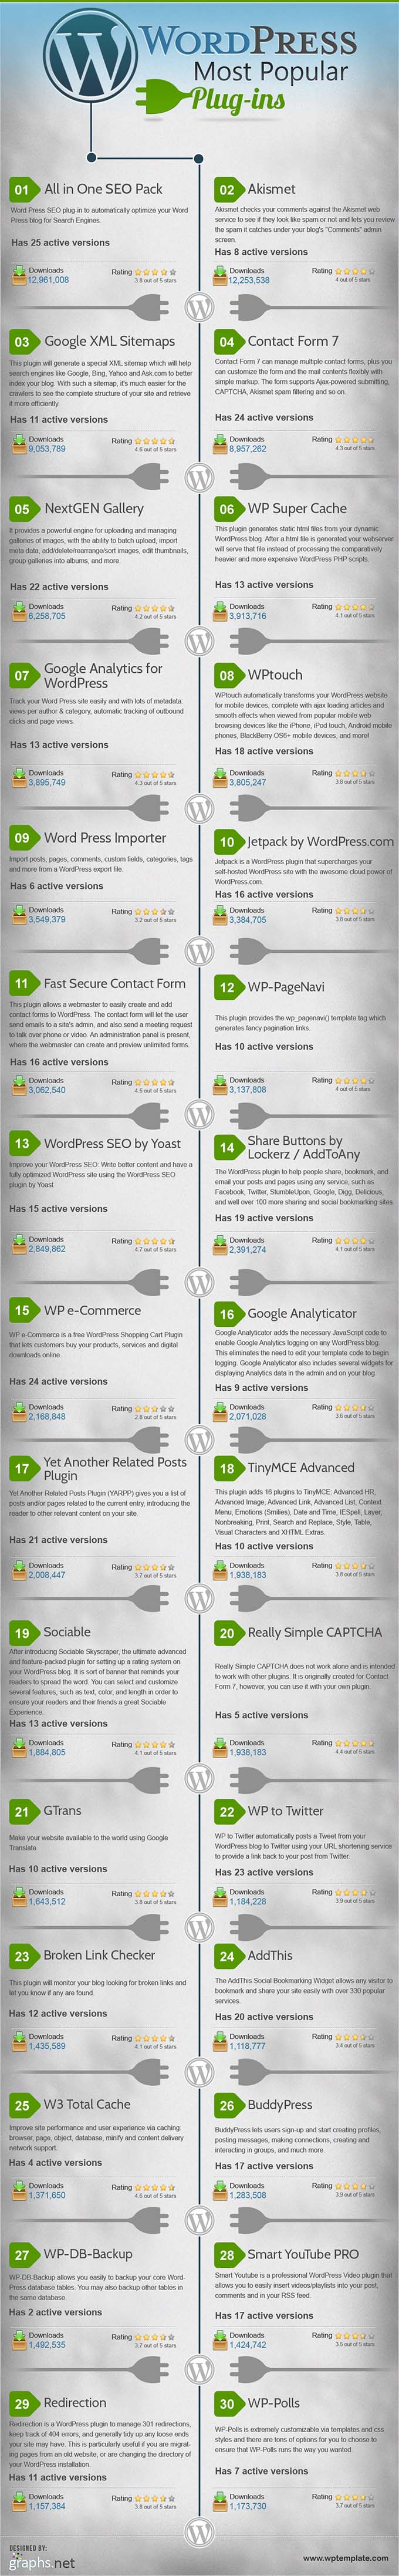 wordpress-most-popular